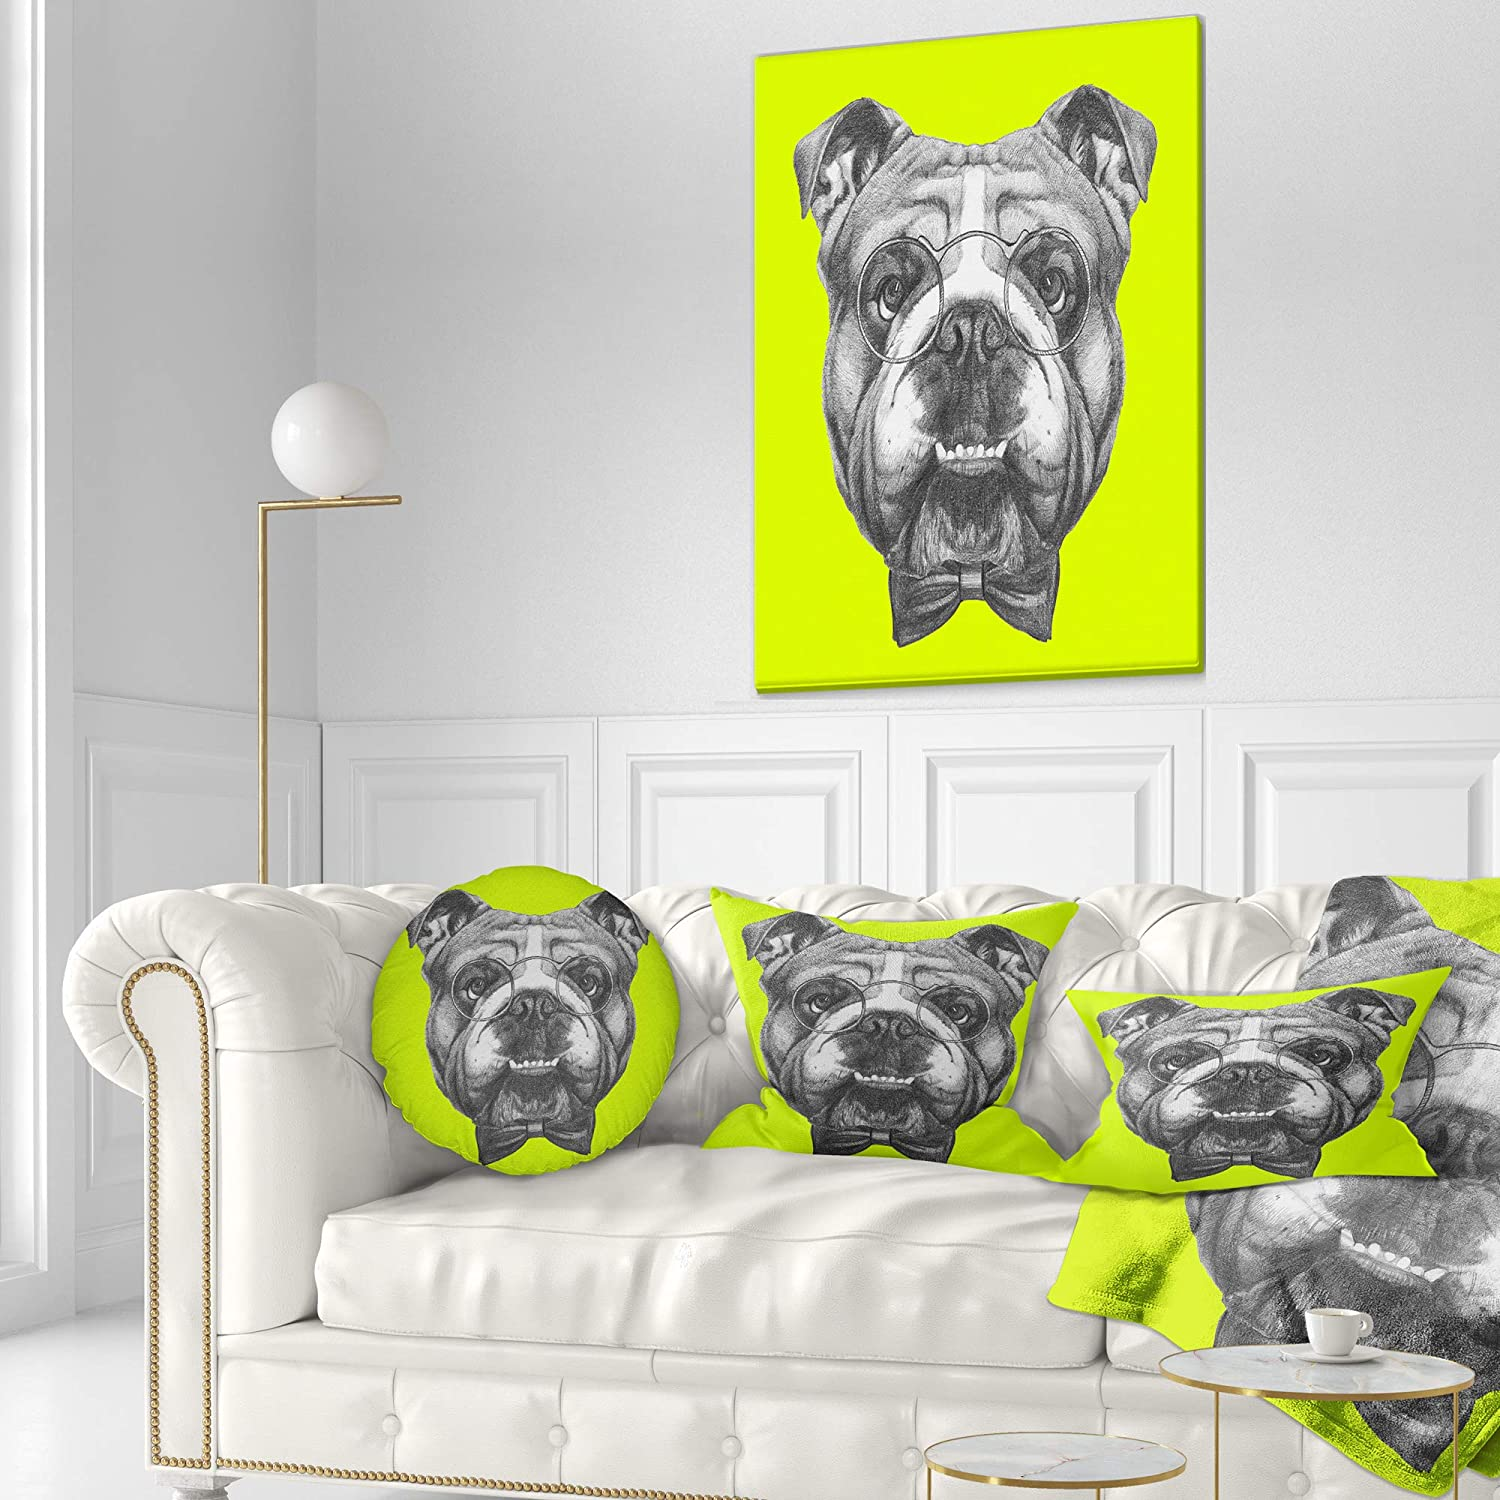 Sofa Throw Pillow 20 Designart CU13202-20-20-C English Bulldog with Bow Tie Contemporary Animal Round Cushion Cover for Living Room